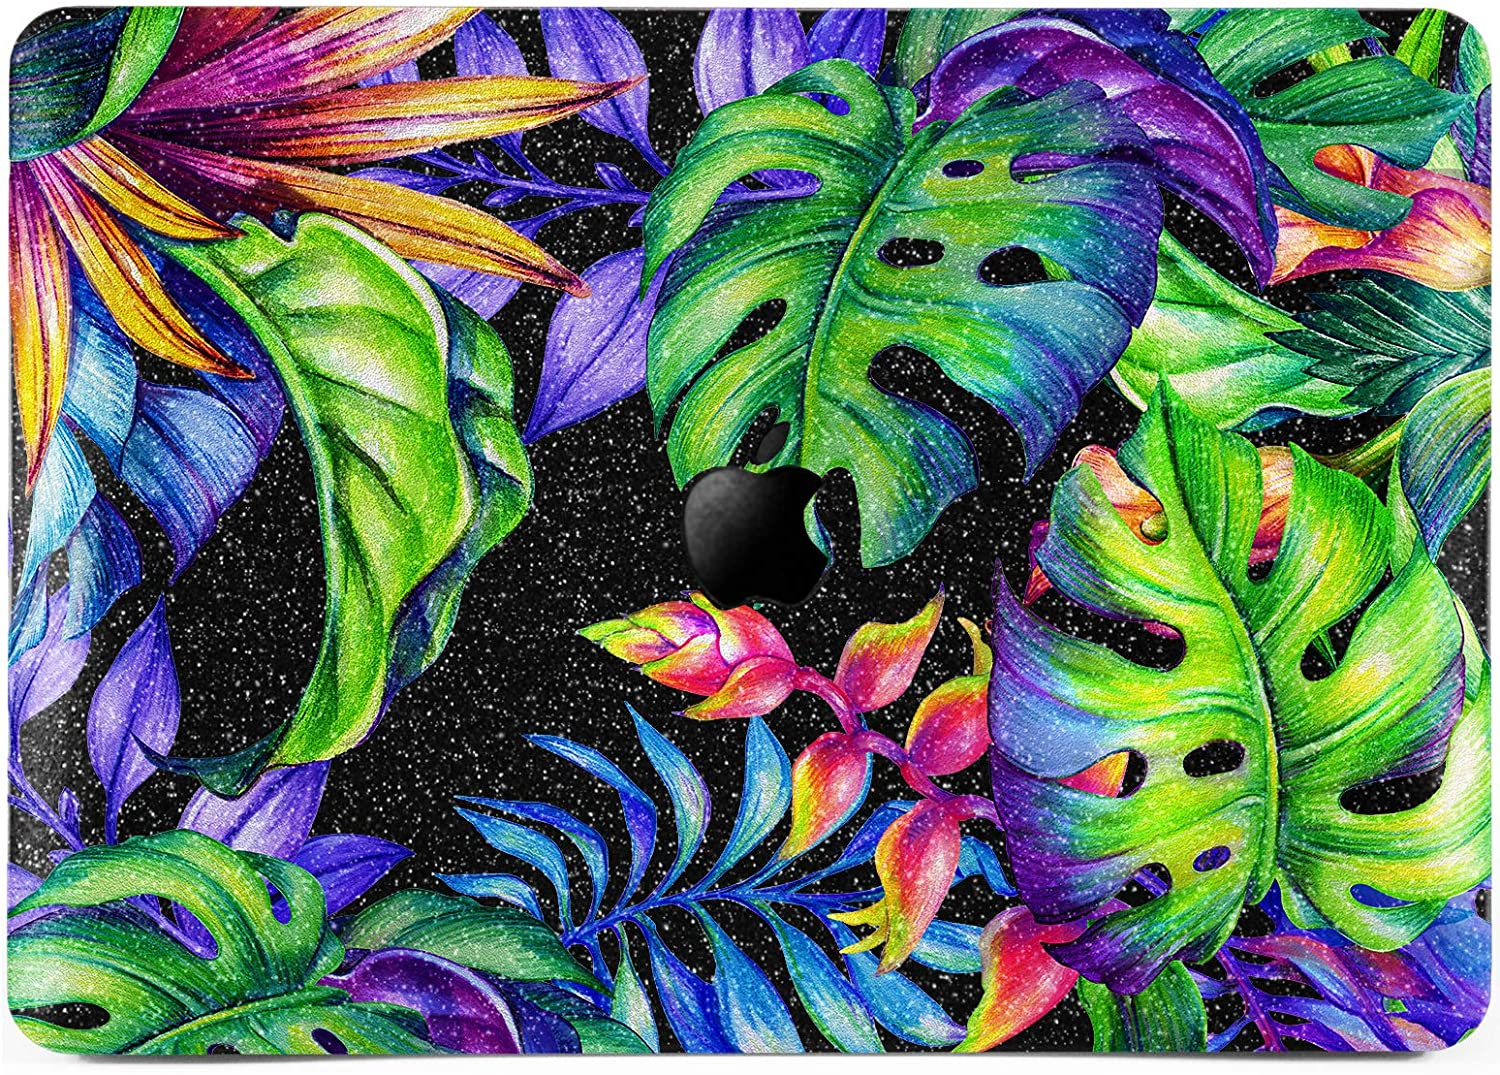 Lex Altern Glitter Case for Apple MacBook Air 13 inch Pro Mac 15 Retina 12 11 2020 2019 2018 2017 Hawaiian Plants Hard Bling Sparkly Black Crystal Trippy Tropical Leaves Cover Laptop Green Protective